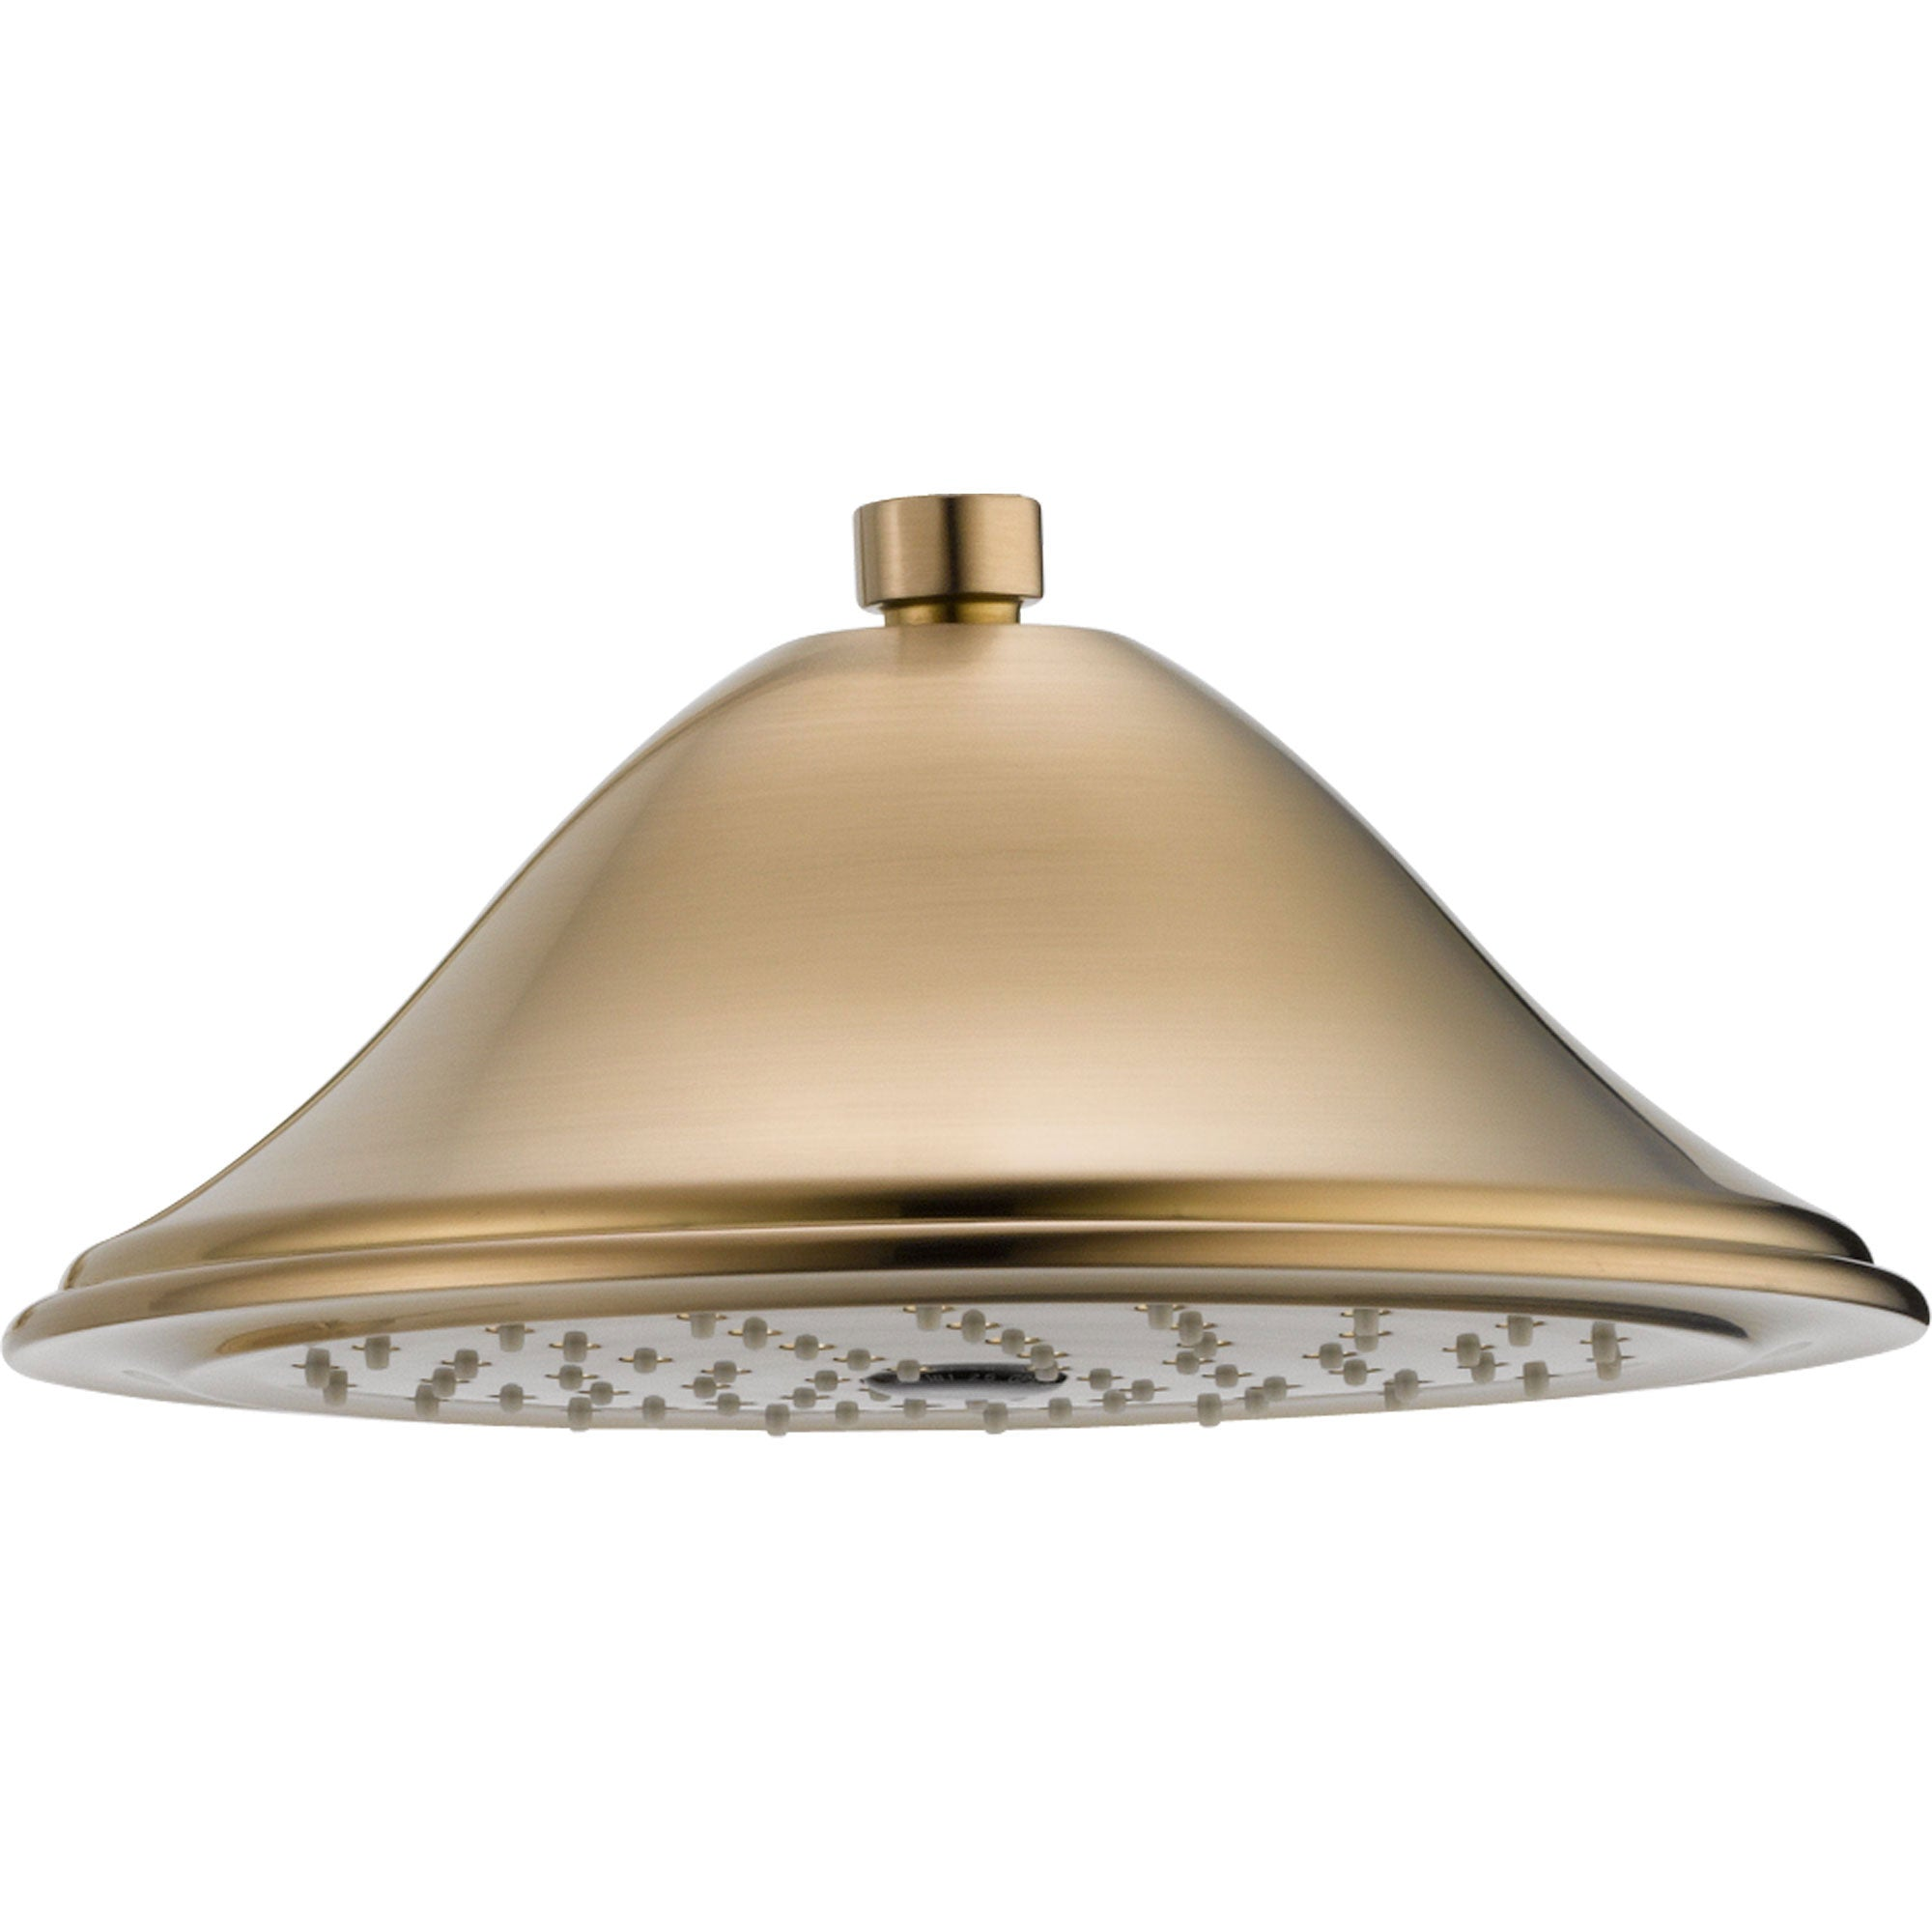 Delta 1-Spray 9-3/8 inch Champagne Bronze Finish Large Rain Showerhead 584303